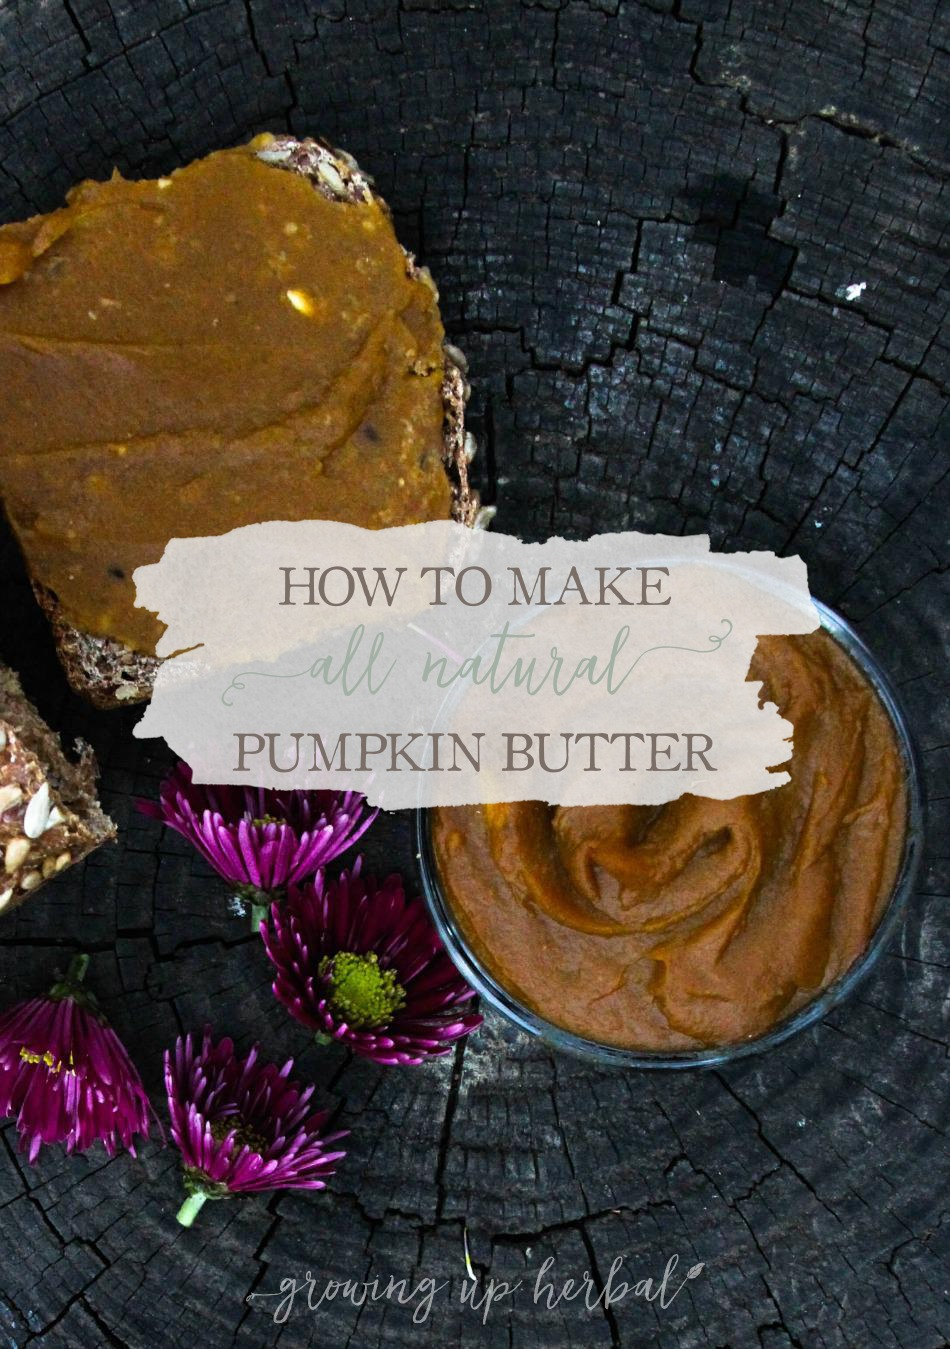 How To Make All Natural Pumpkin Butter | Growing Up Herbal | Pumpkins mean fall has officially arrived. Grab a kid and make some delicious, all natural pumpkin butter today!